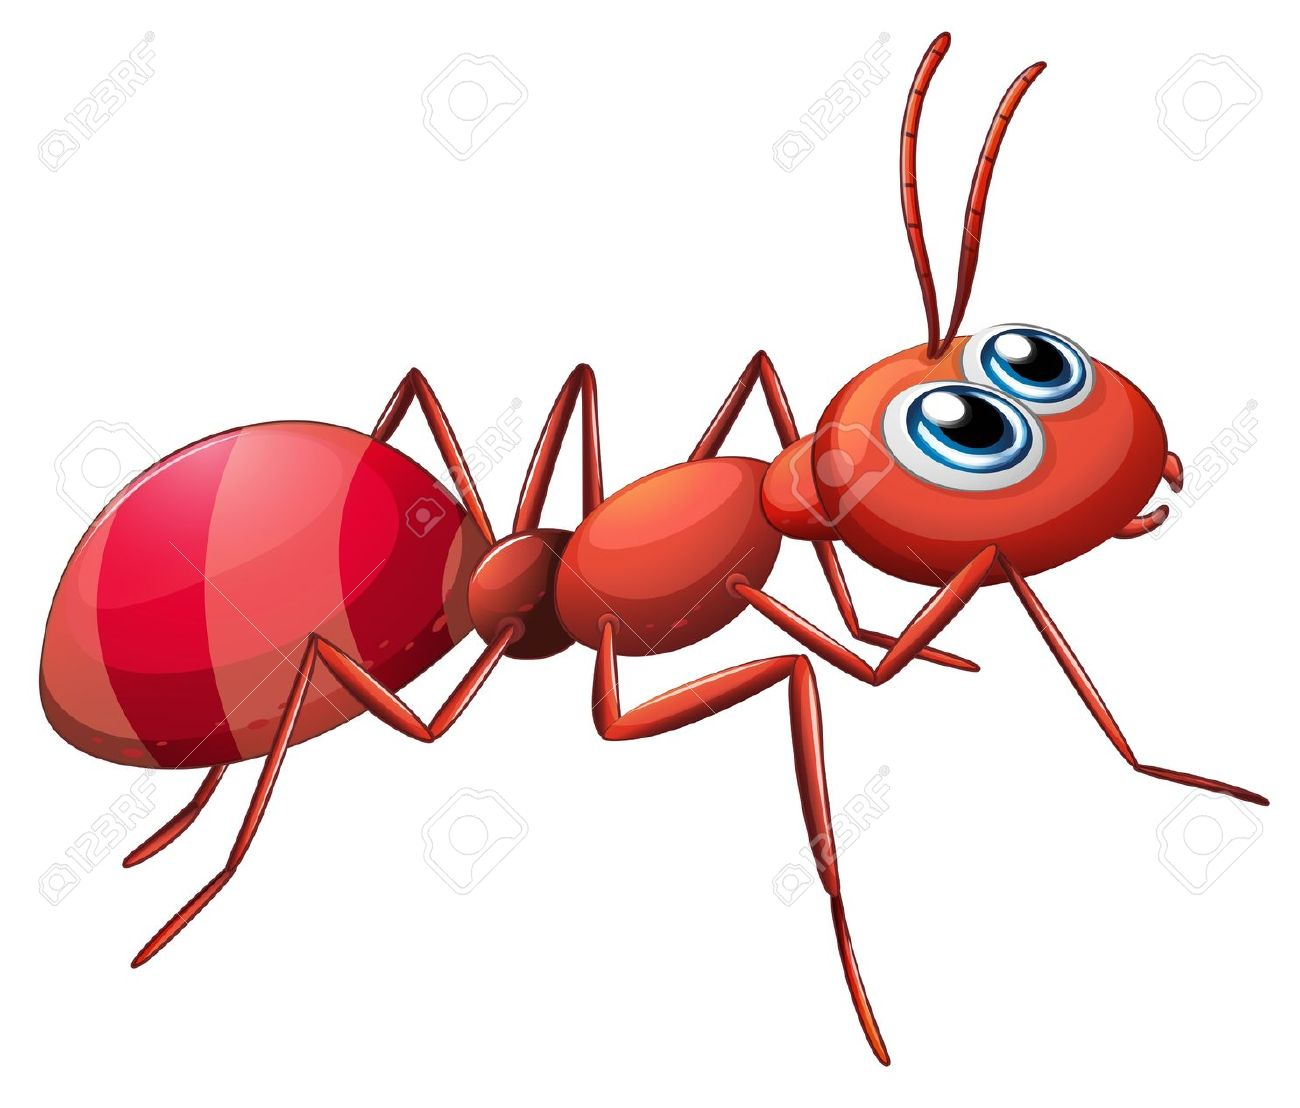 Ant clipart image freeuse stock Ants Clipart | Free download best Ants Clipart on ClipArtMag.com freeuse stock